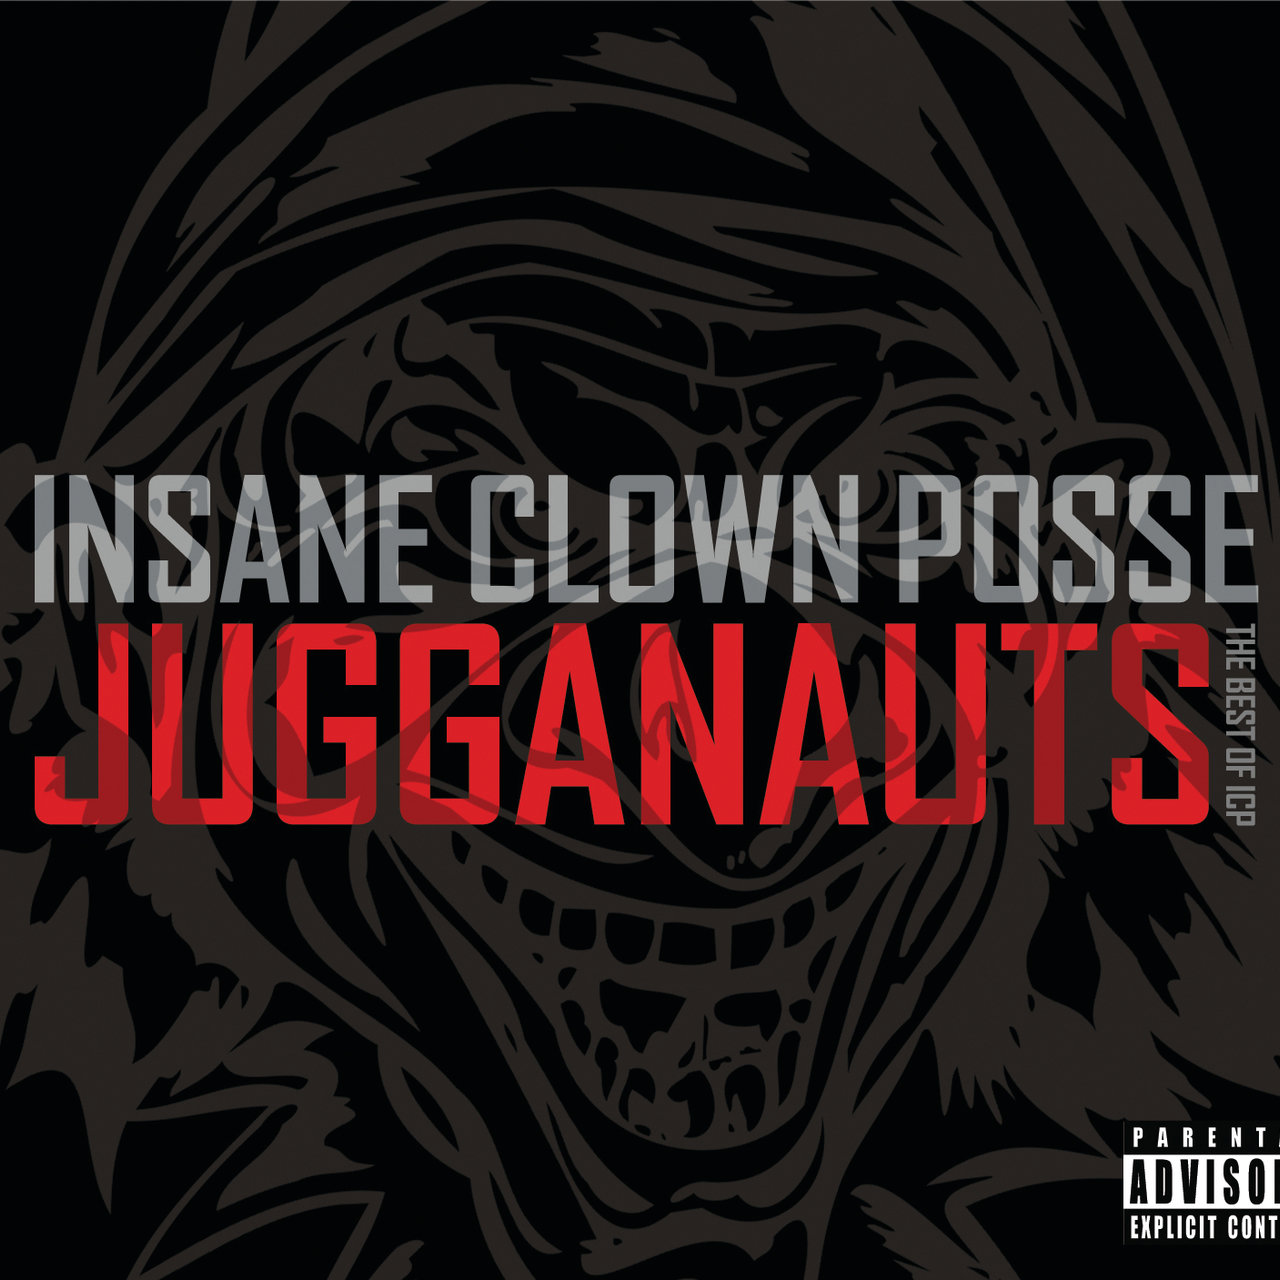 Icp Albums And Songs List Top jugganauts - the best of icp / insane clown posse tidal